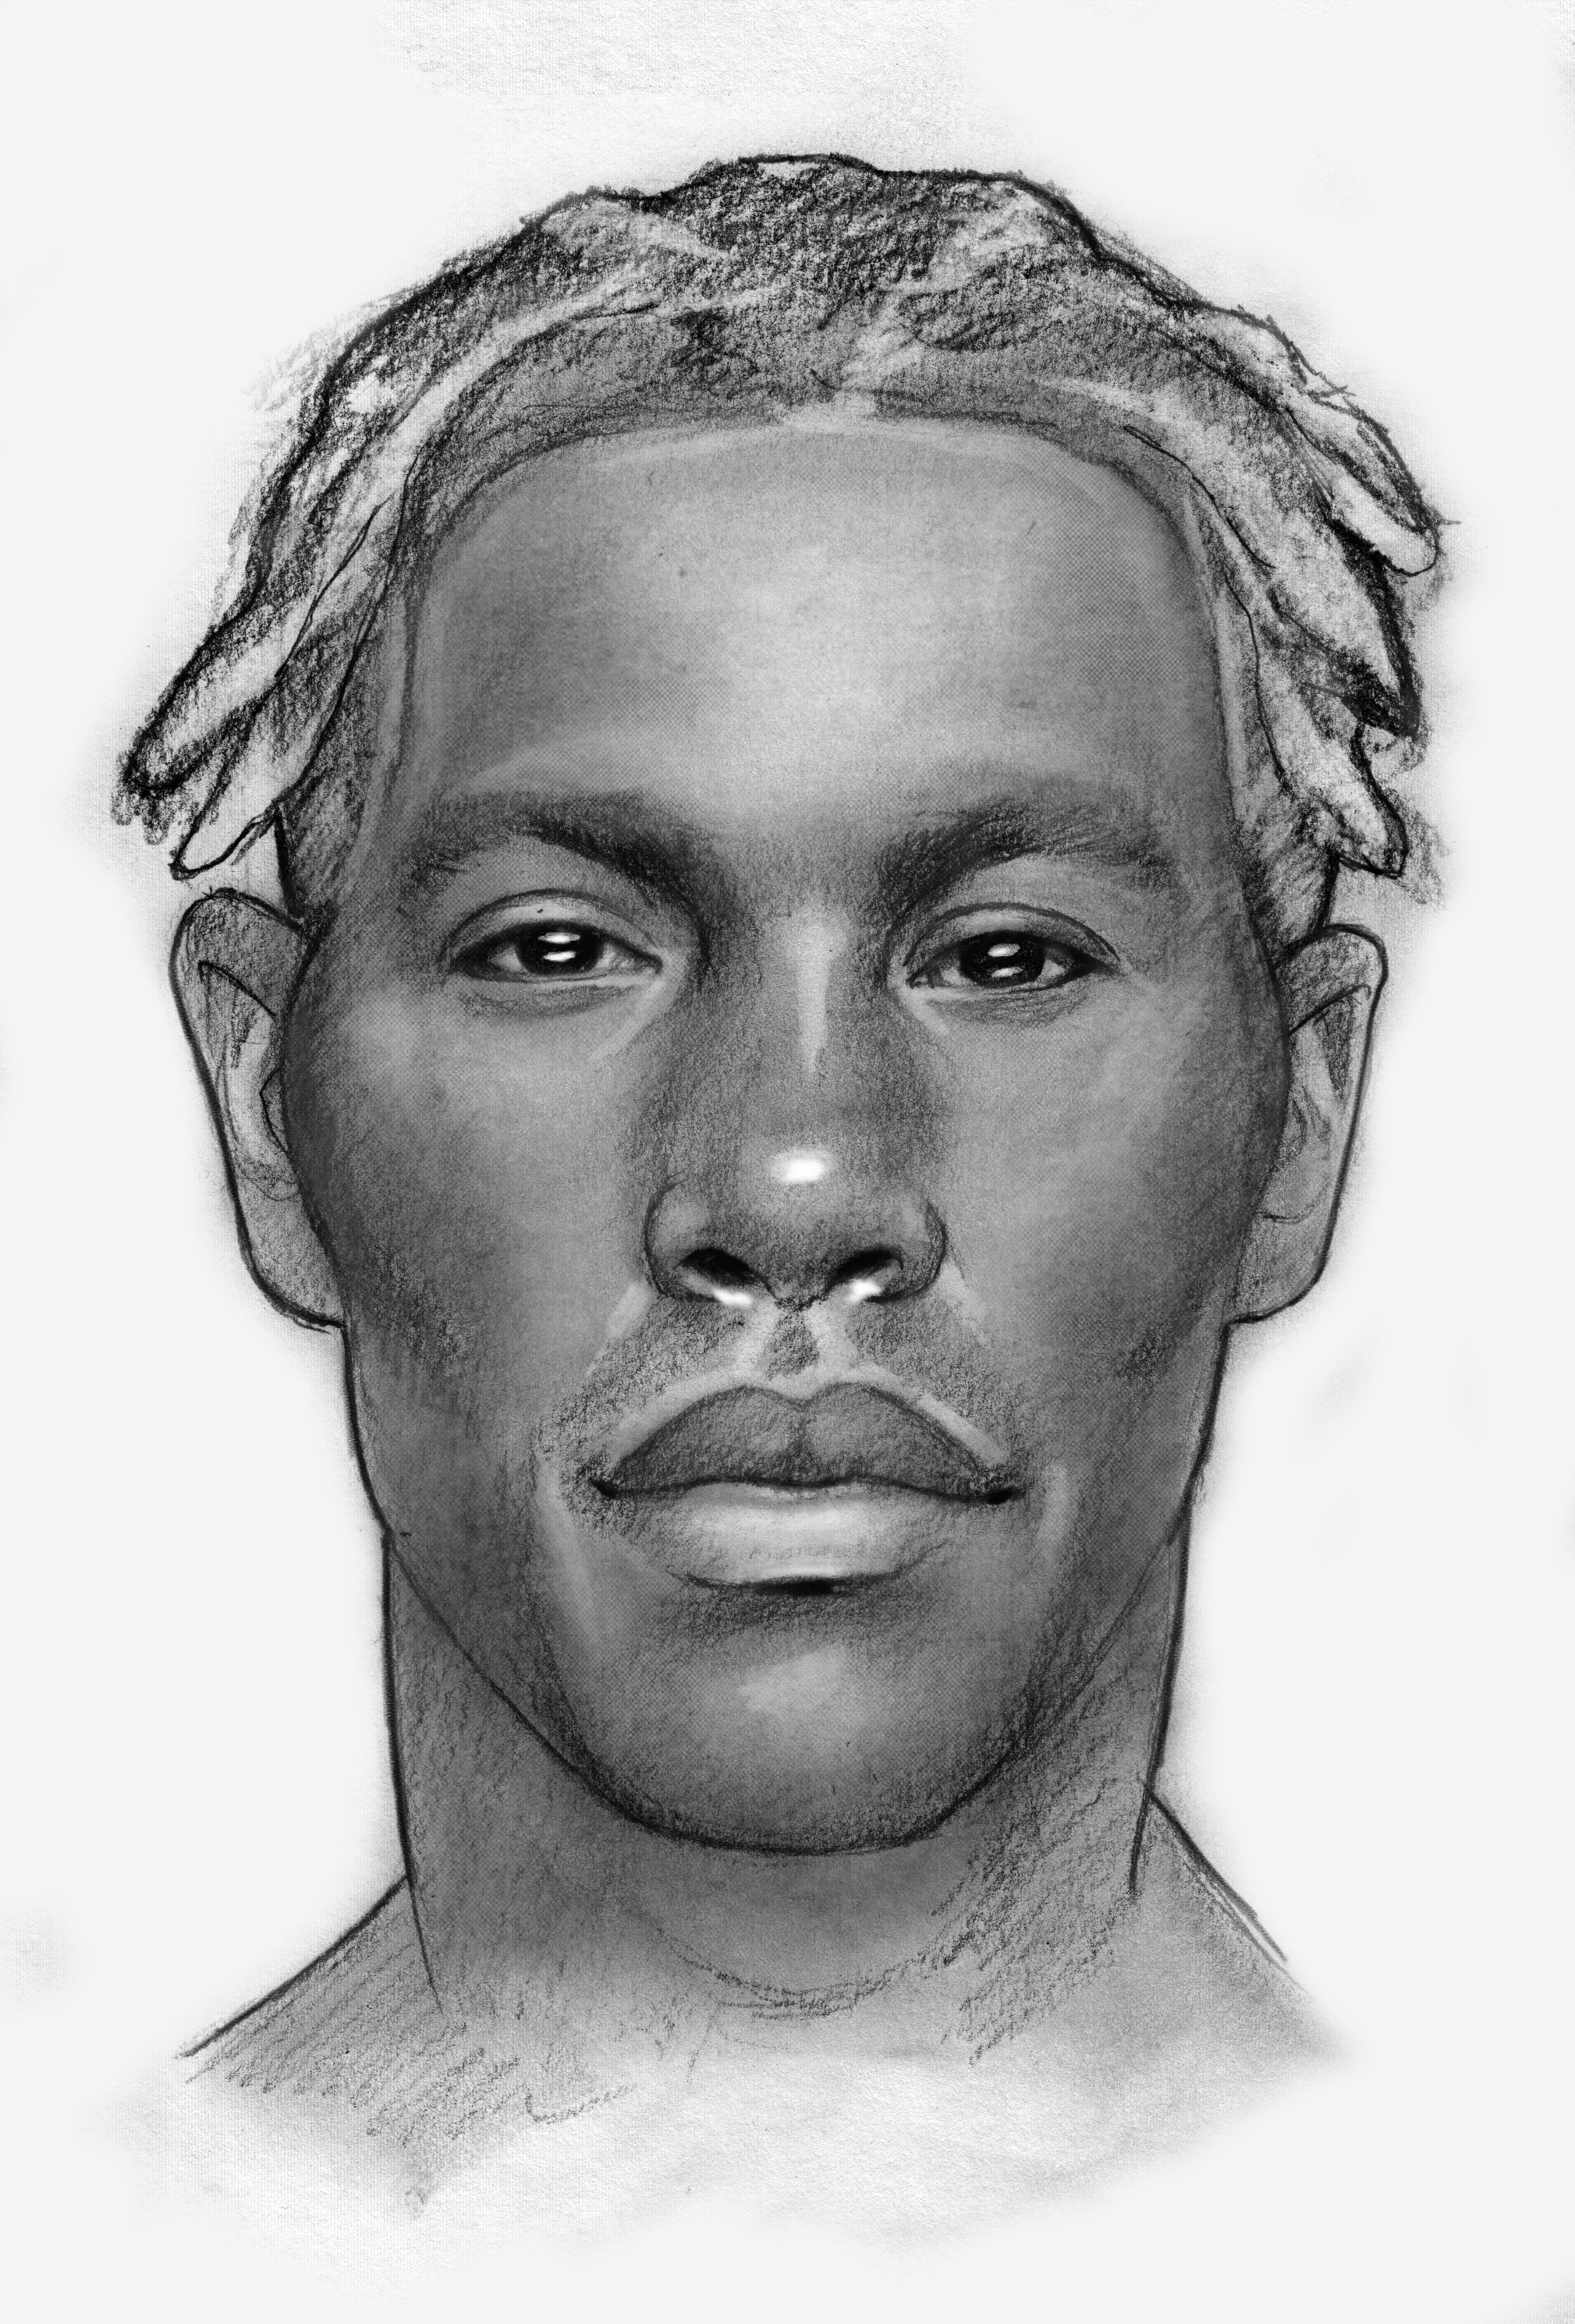 Police release sketch of Columbia rape suspect, reward to up to $5,000